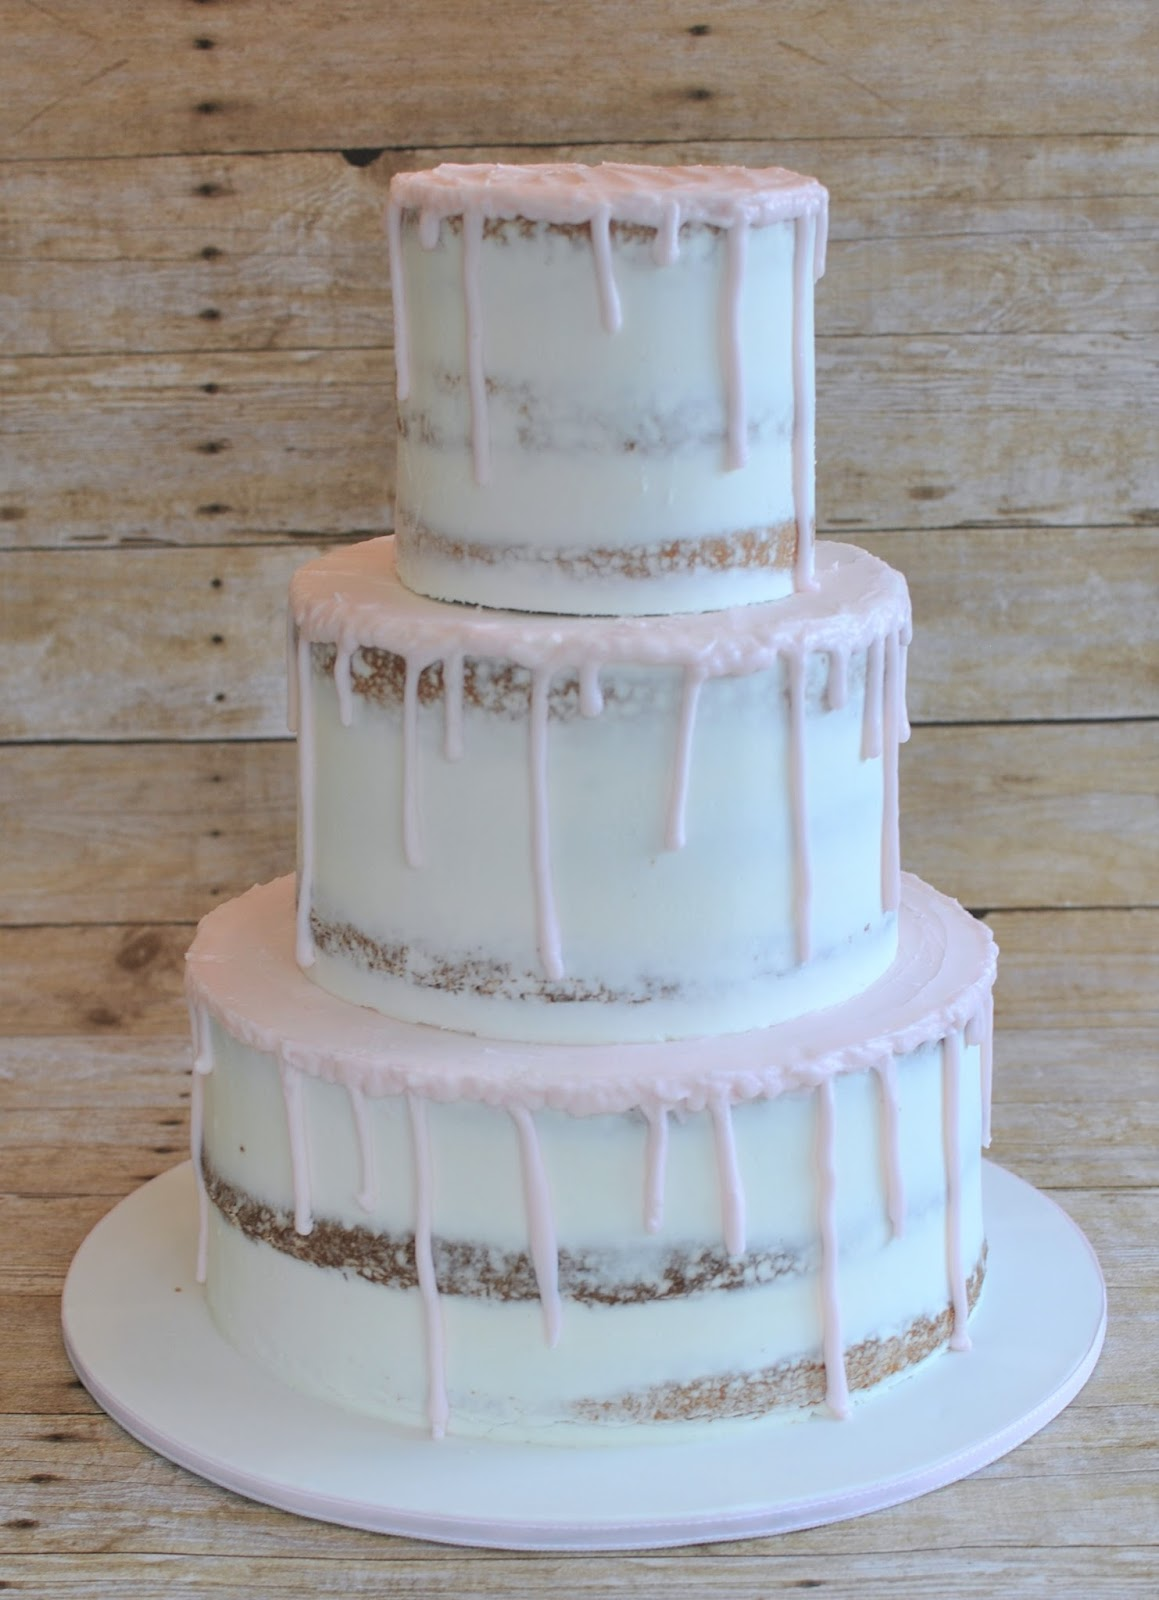 How Long Does Buttercream Last In A Cake